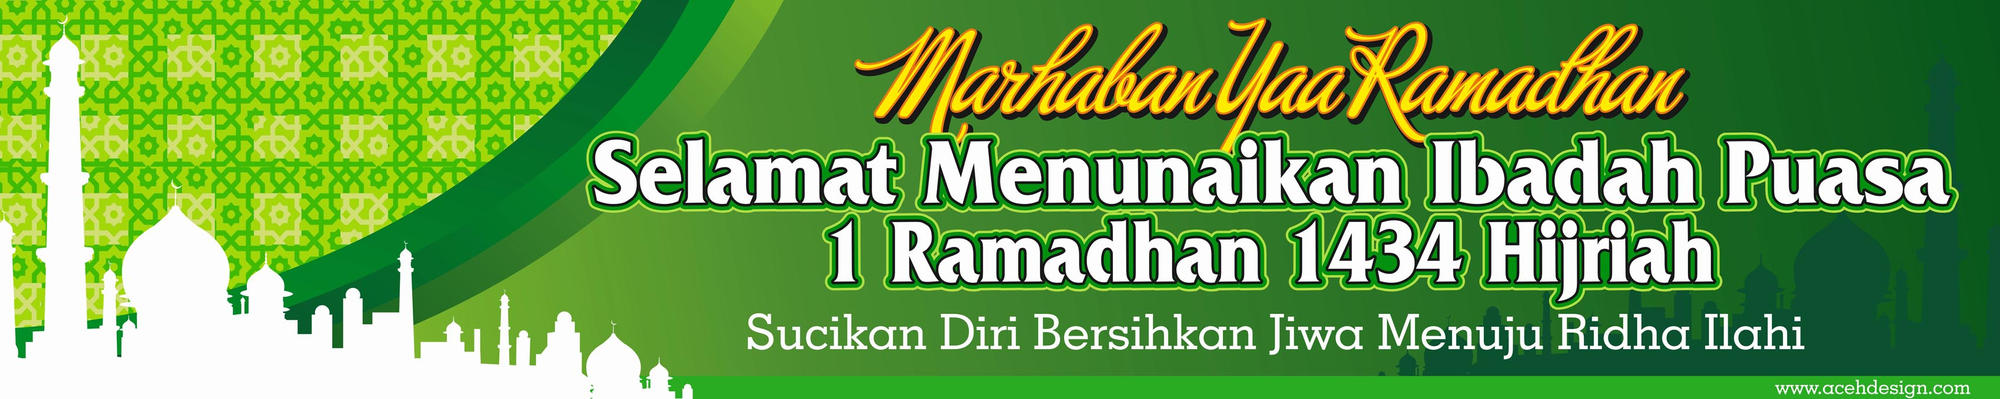 Spanduk Ramadhan 1434 From Acehdesign by batatx